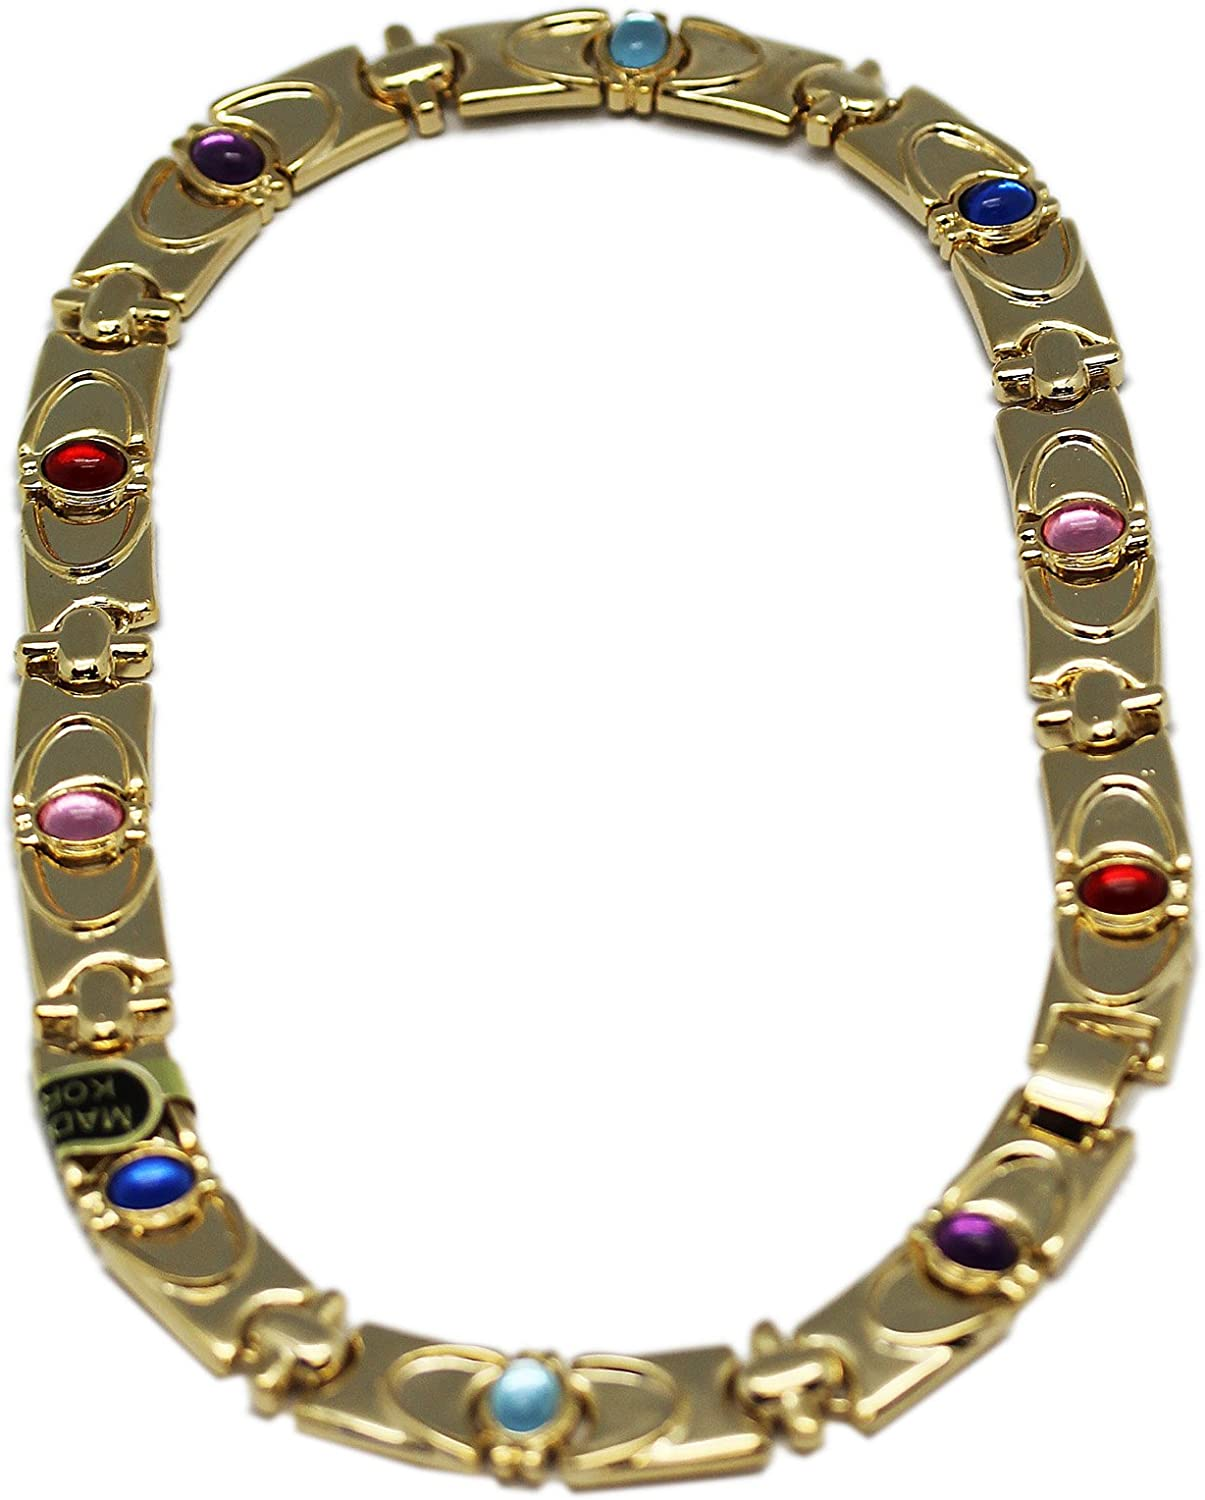 colorfully Embellished golden Chain Plate Necklace (18 Inch)